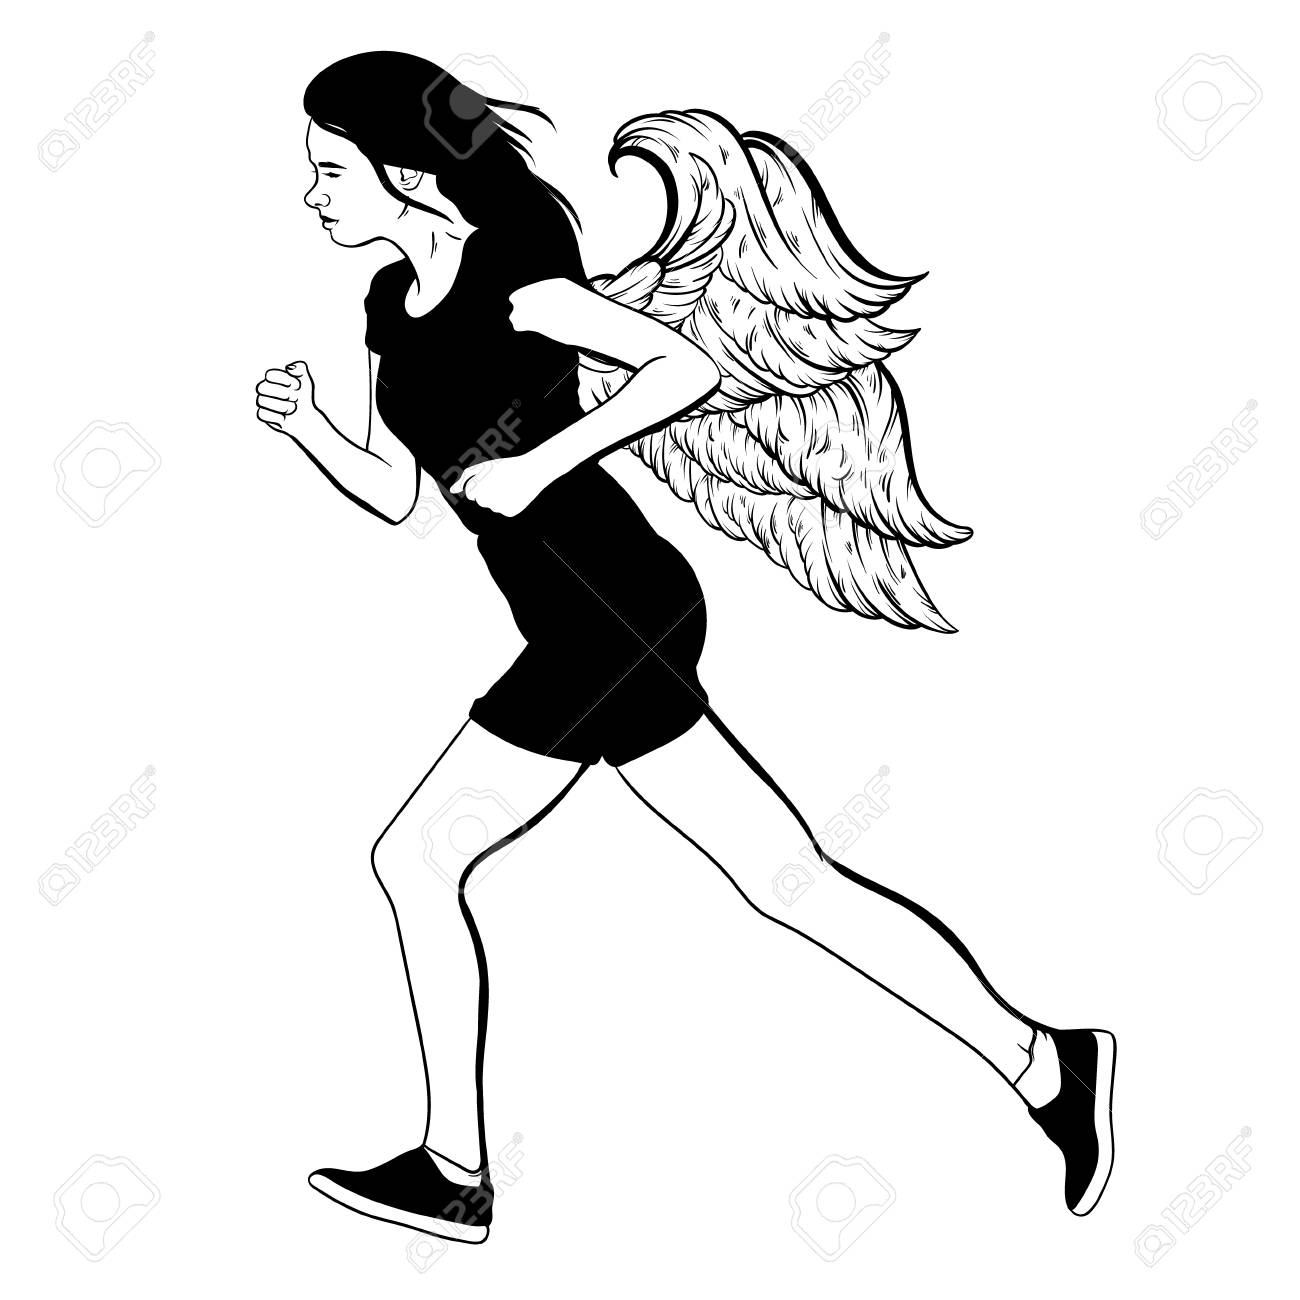 1300x1300 Vector Hand Drawn Illustration Of Running Girl With Wings Made